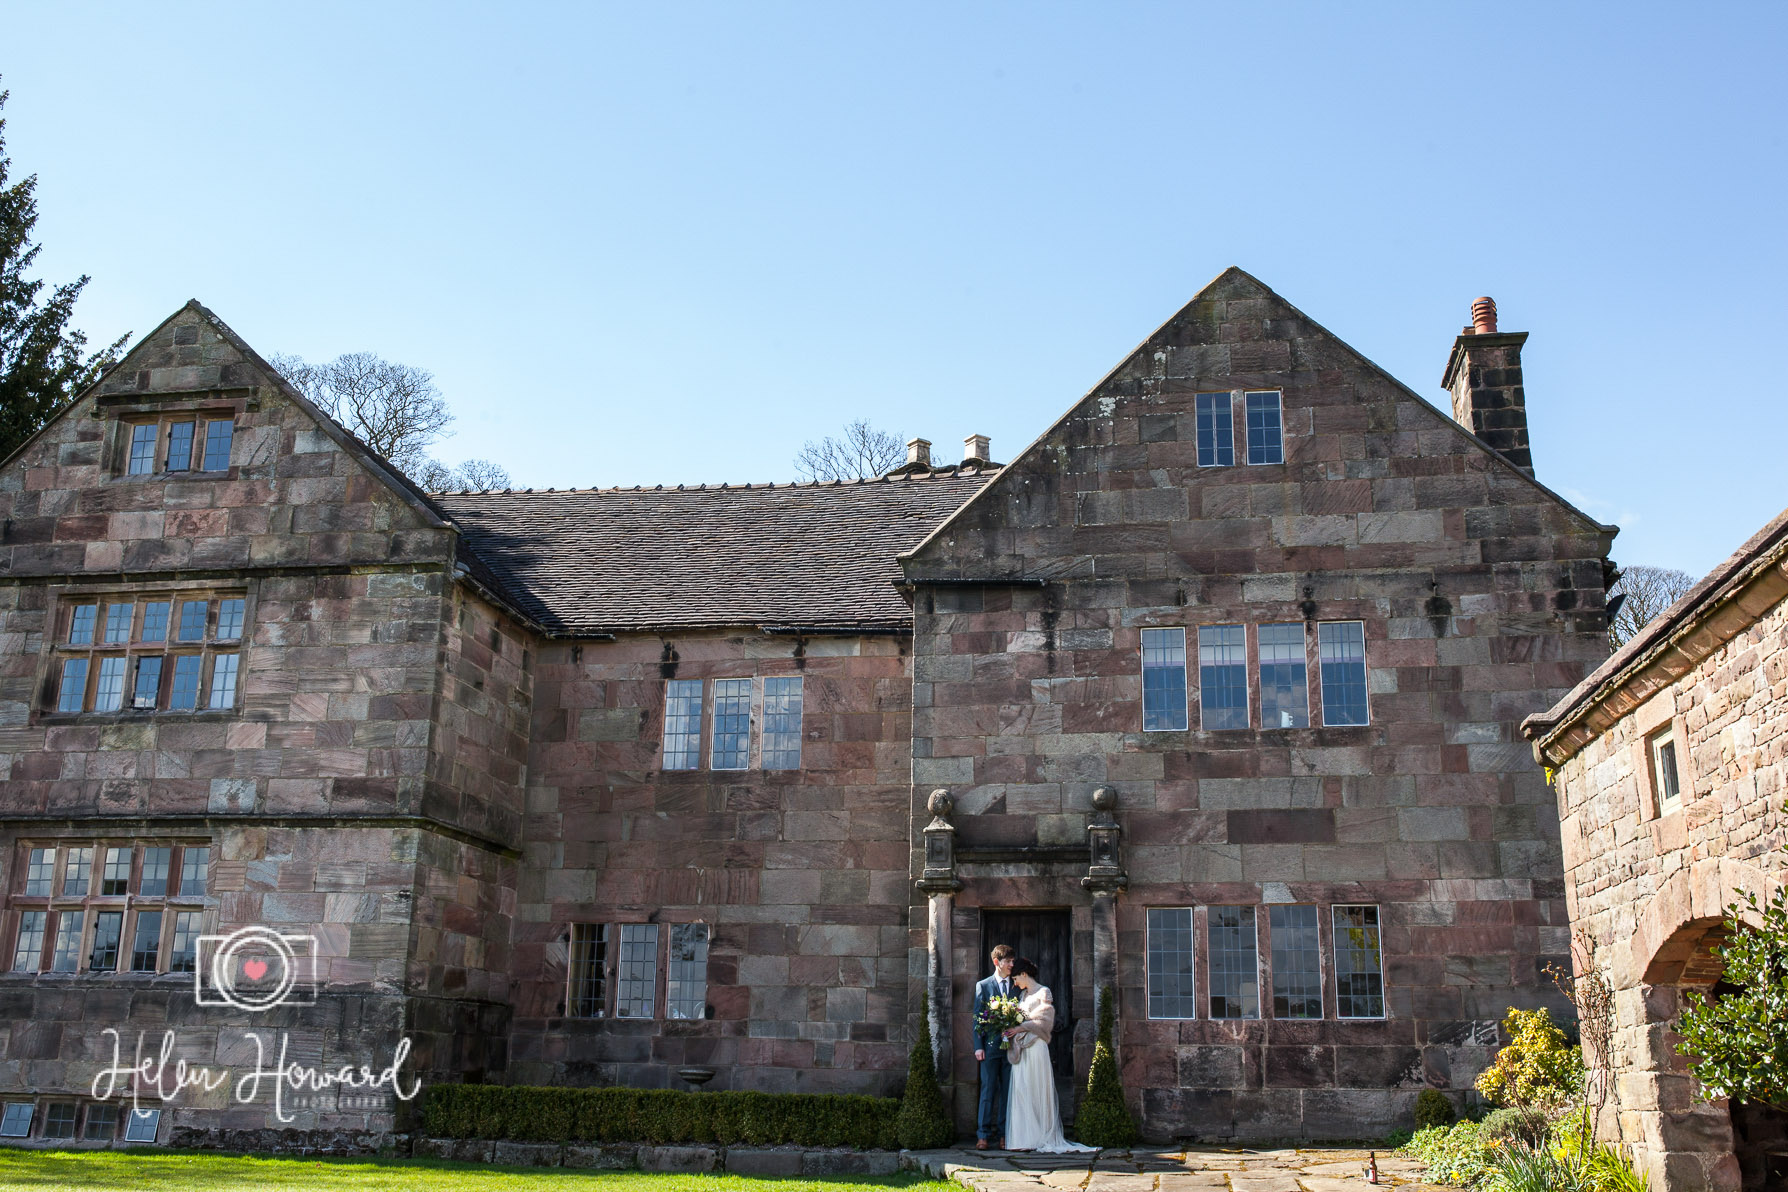 A bride and groom portrait at The Ashes in Endon